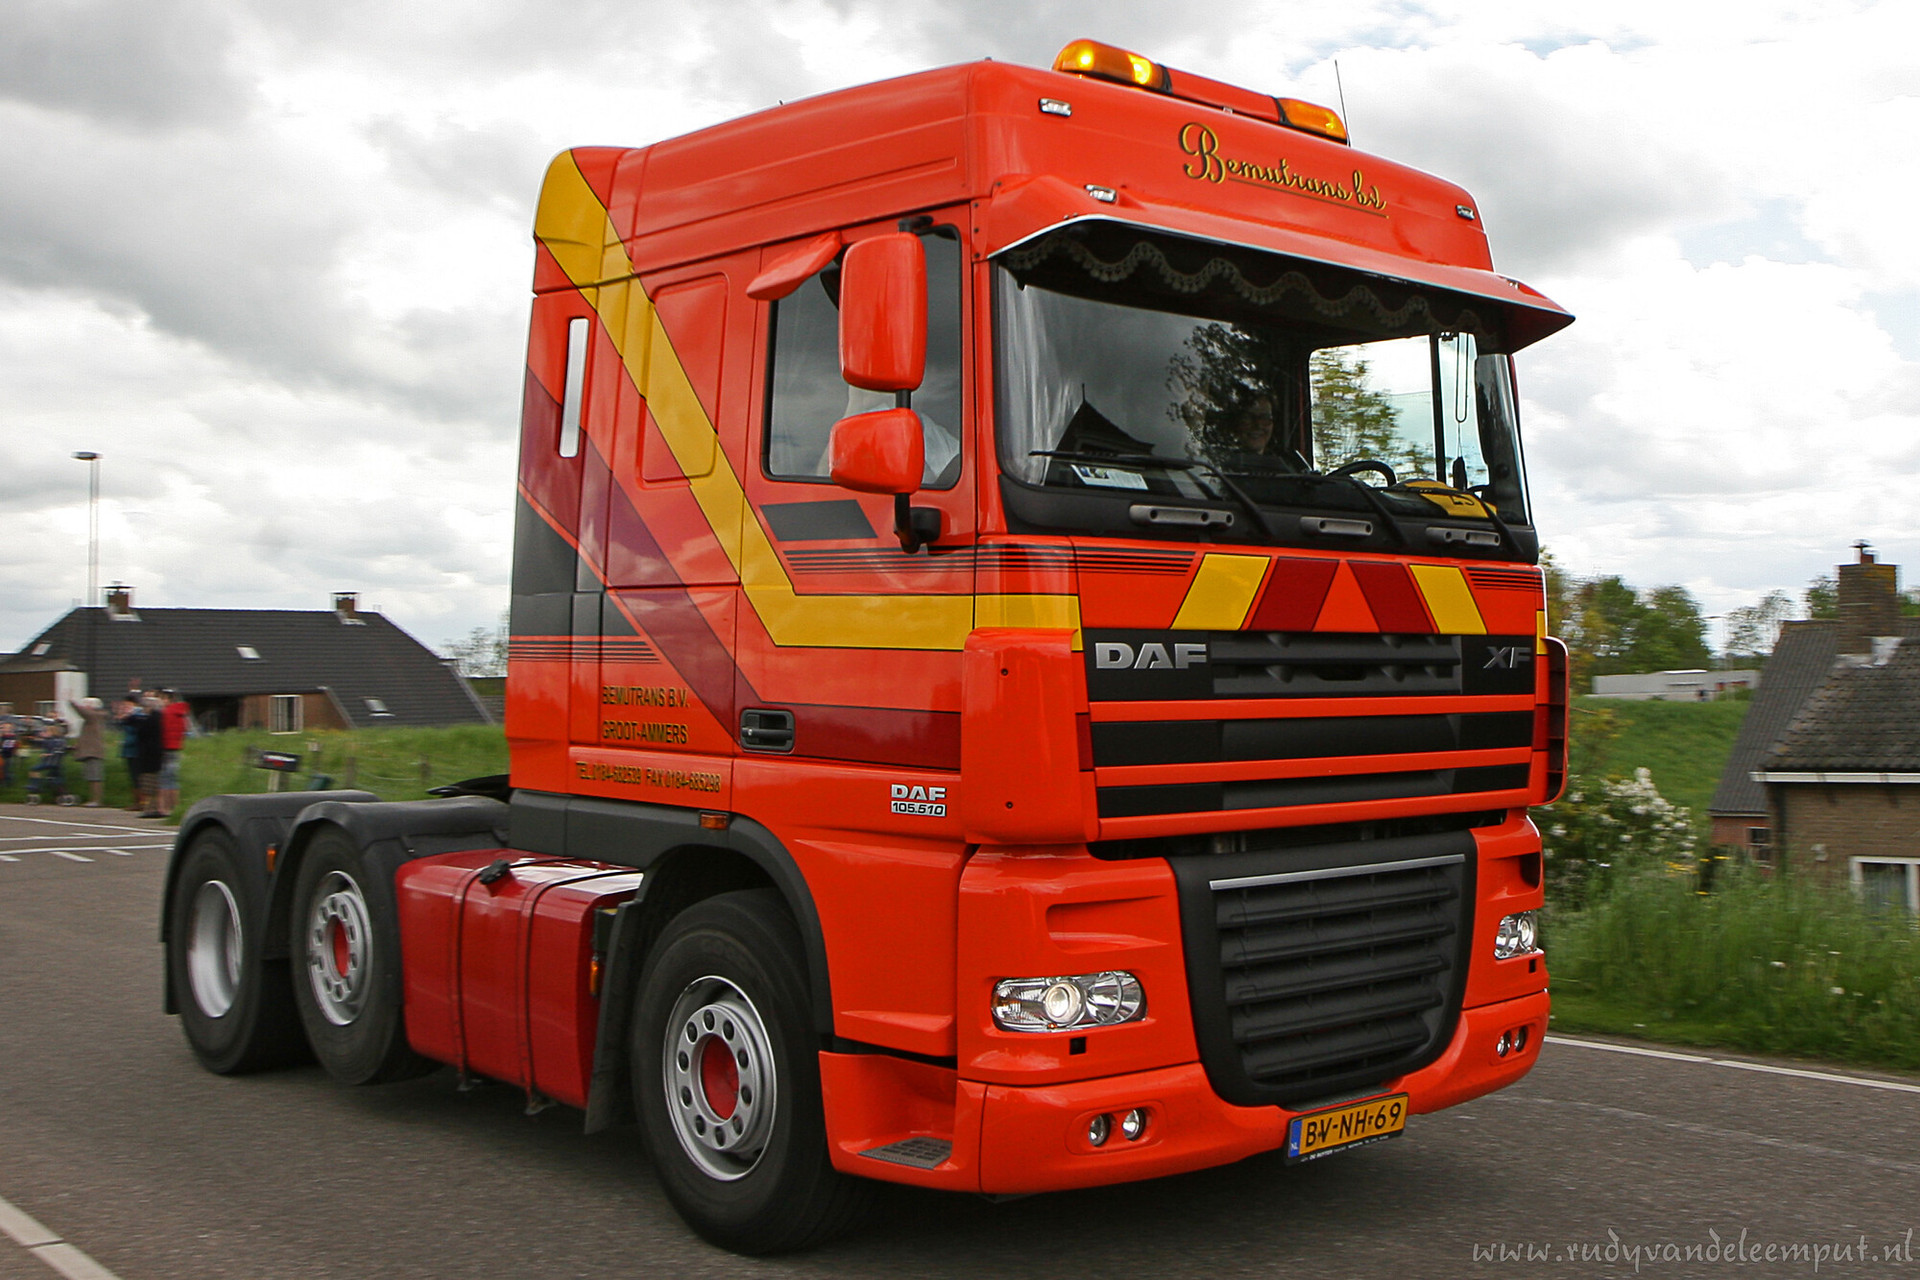 BV-NH-69 | Build: 2009 - DAF XF105.510